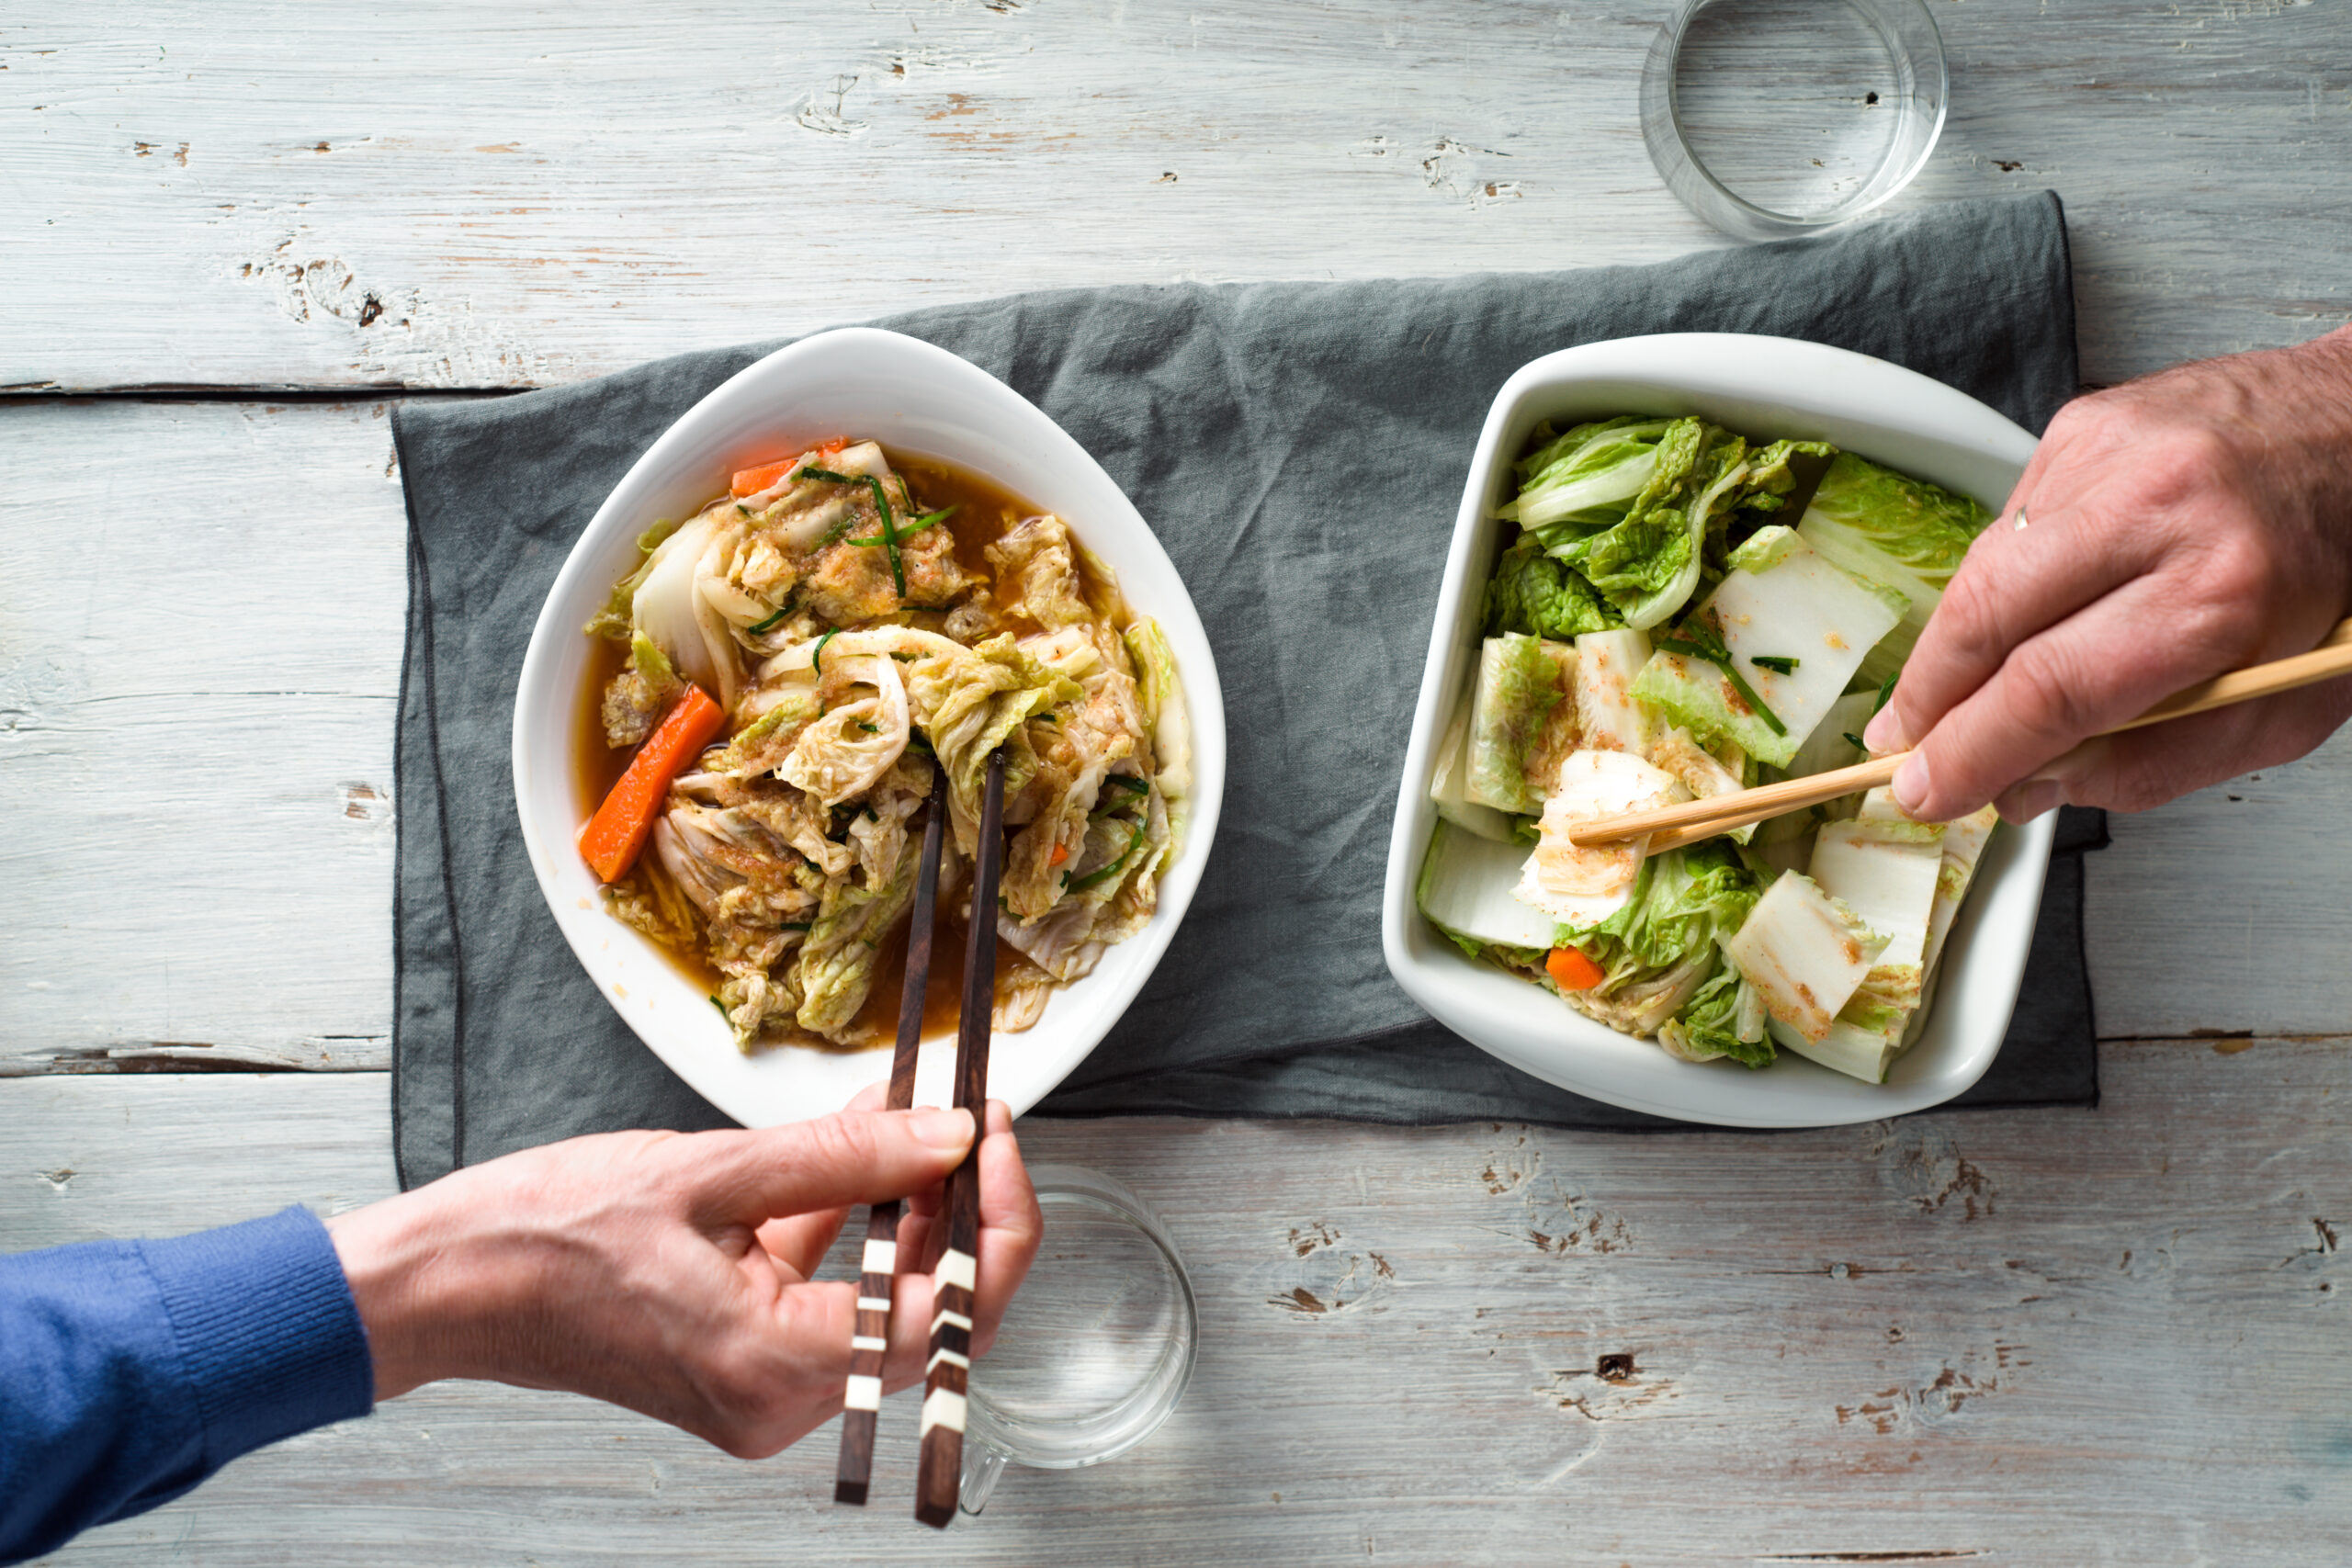 Gut Health: The Next Mega-Trend in Health and Wellness